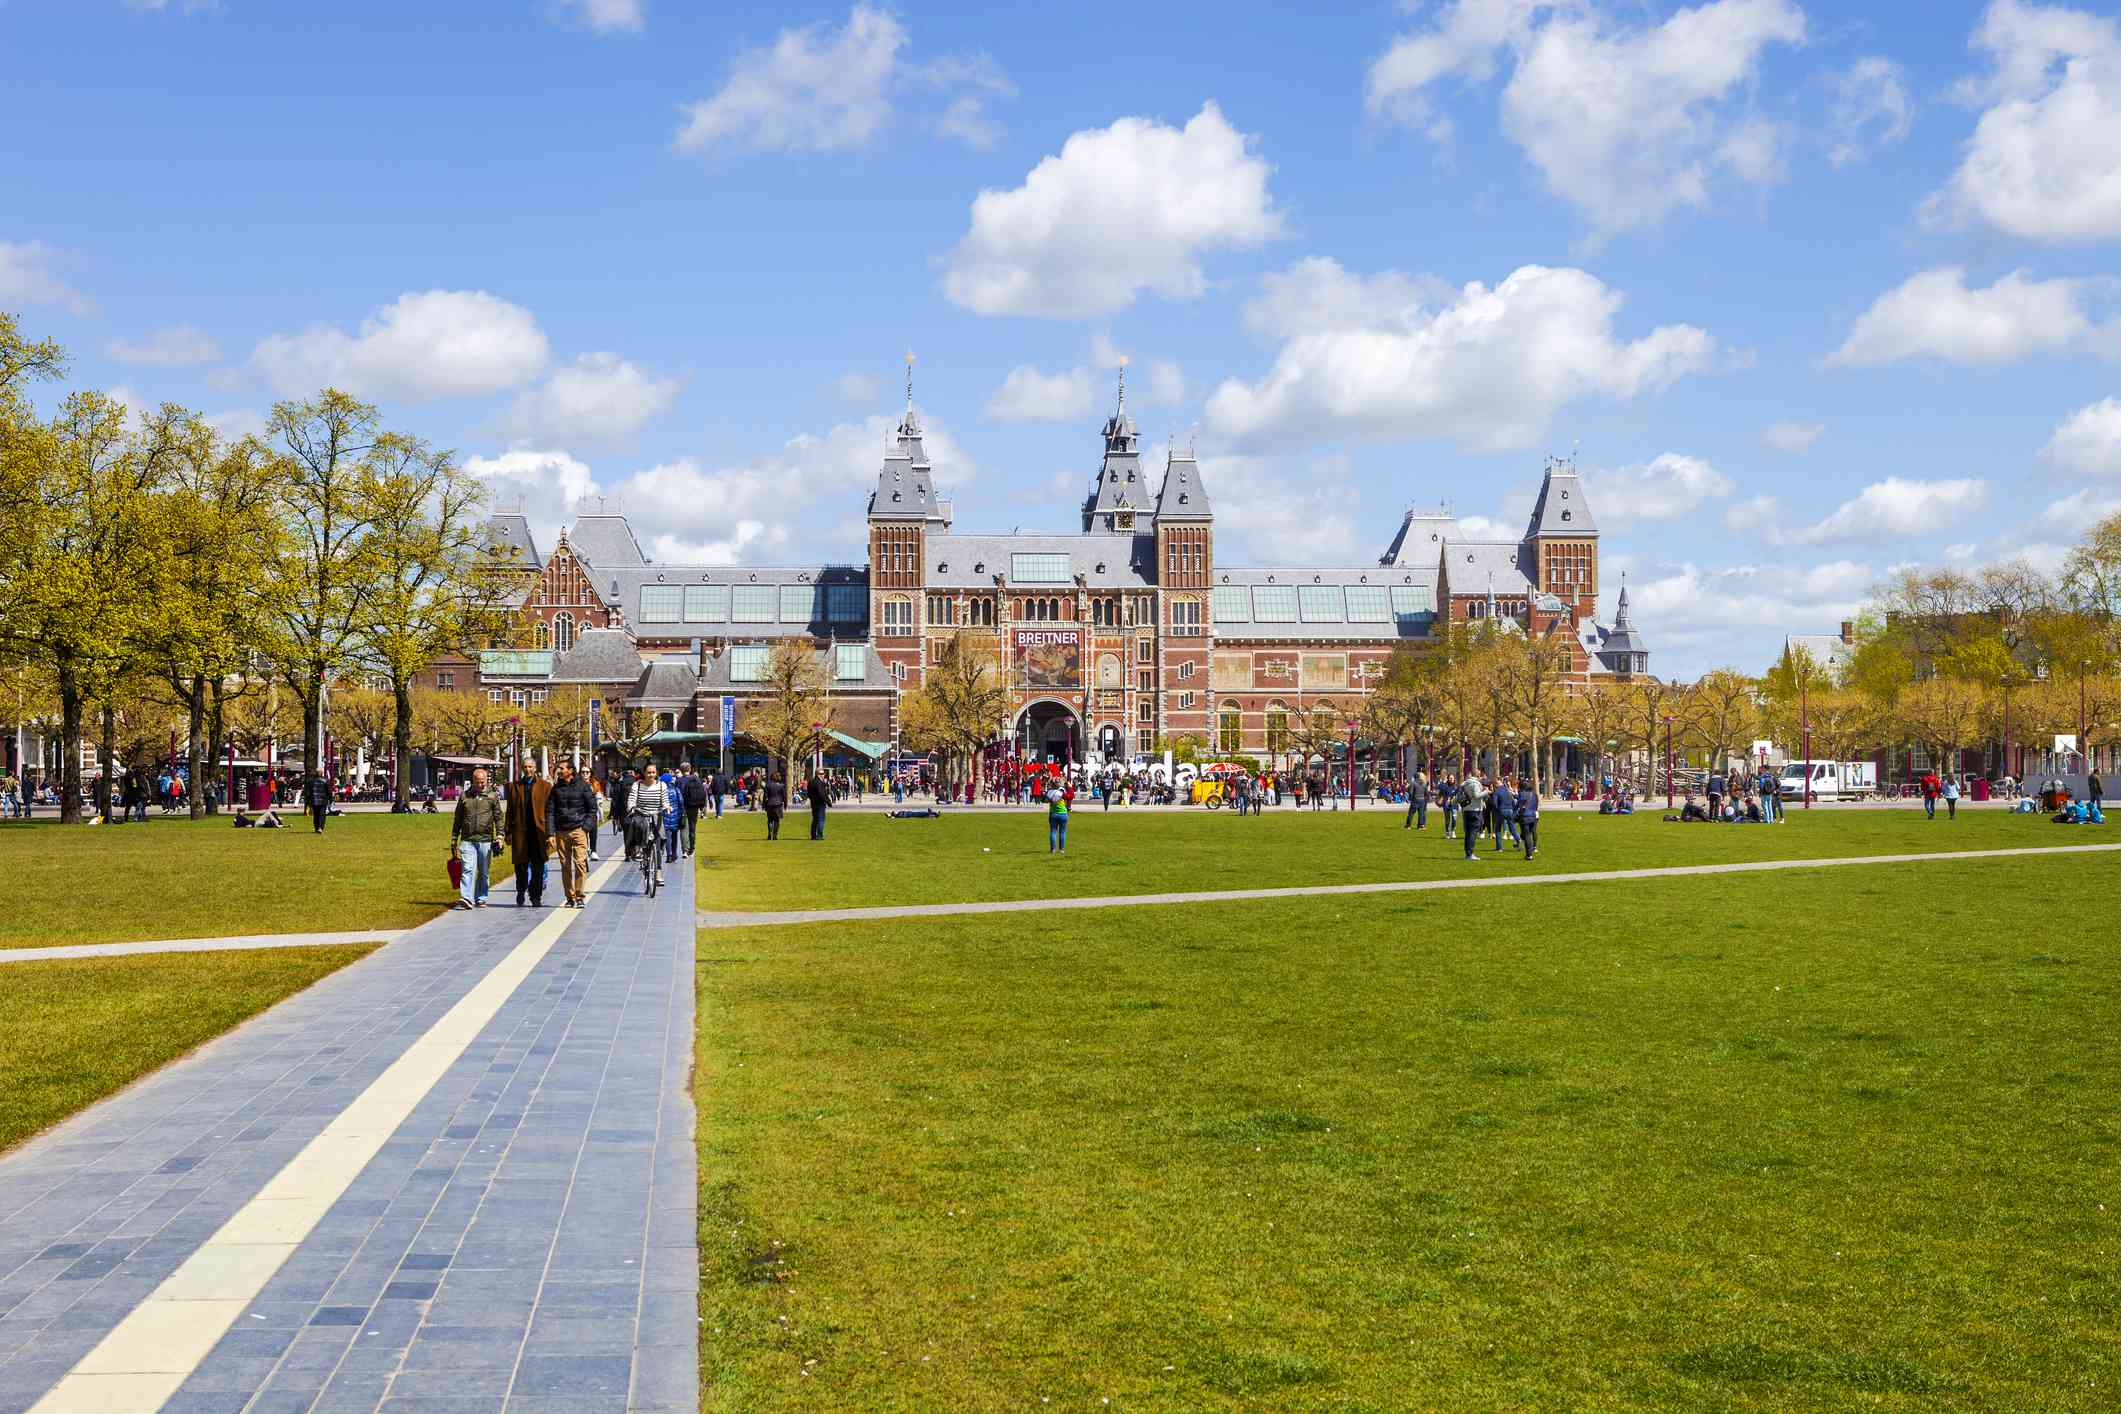 People, grass field and view of Rijksmuseum, Museumplein